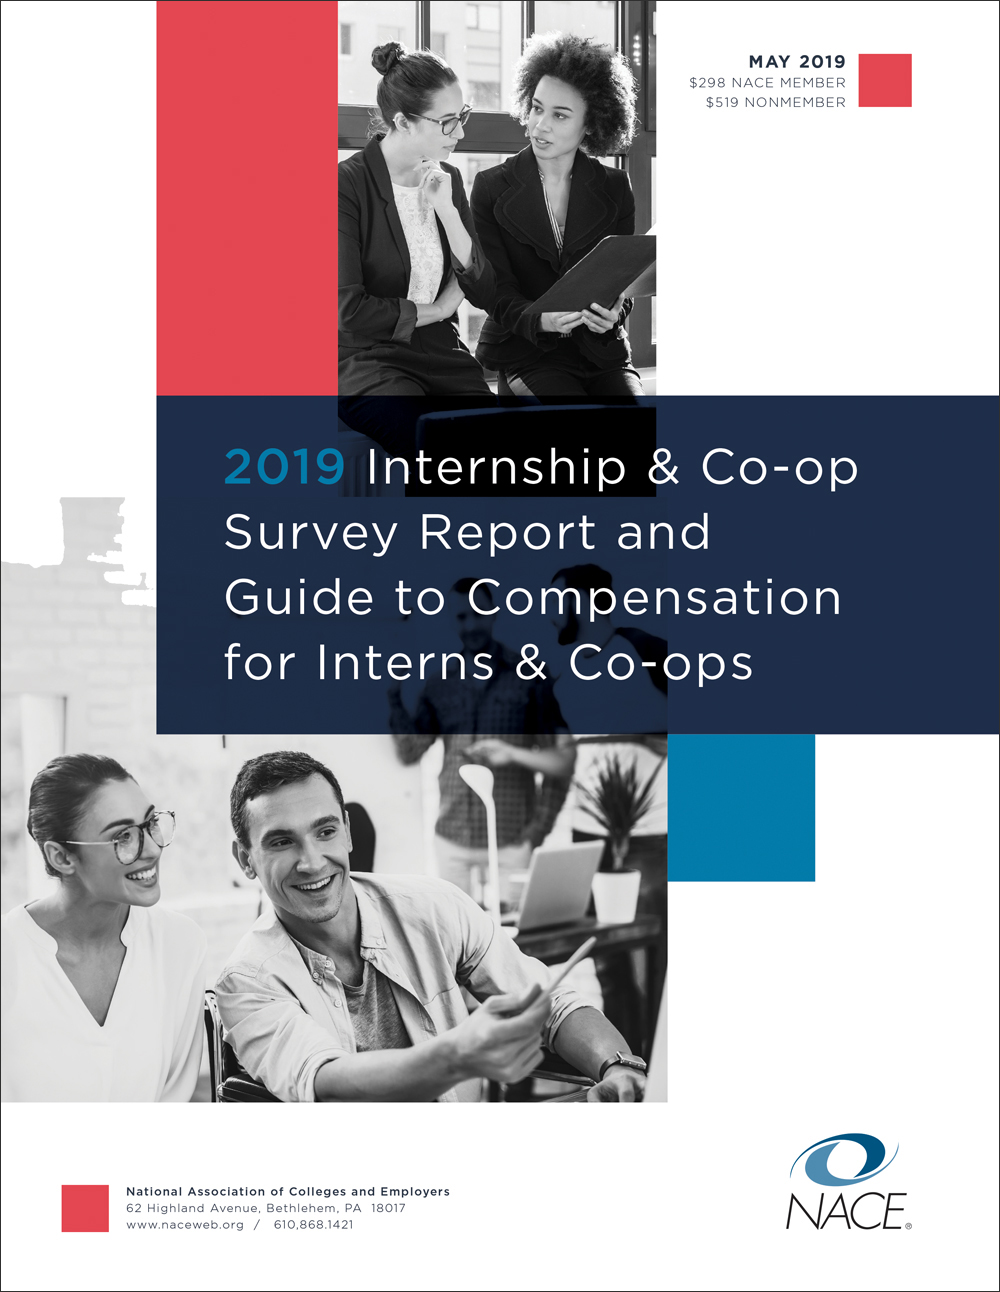 2019 NACE Internship Survey & Compensation Guide Combo